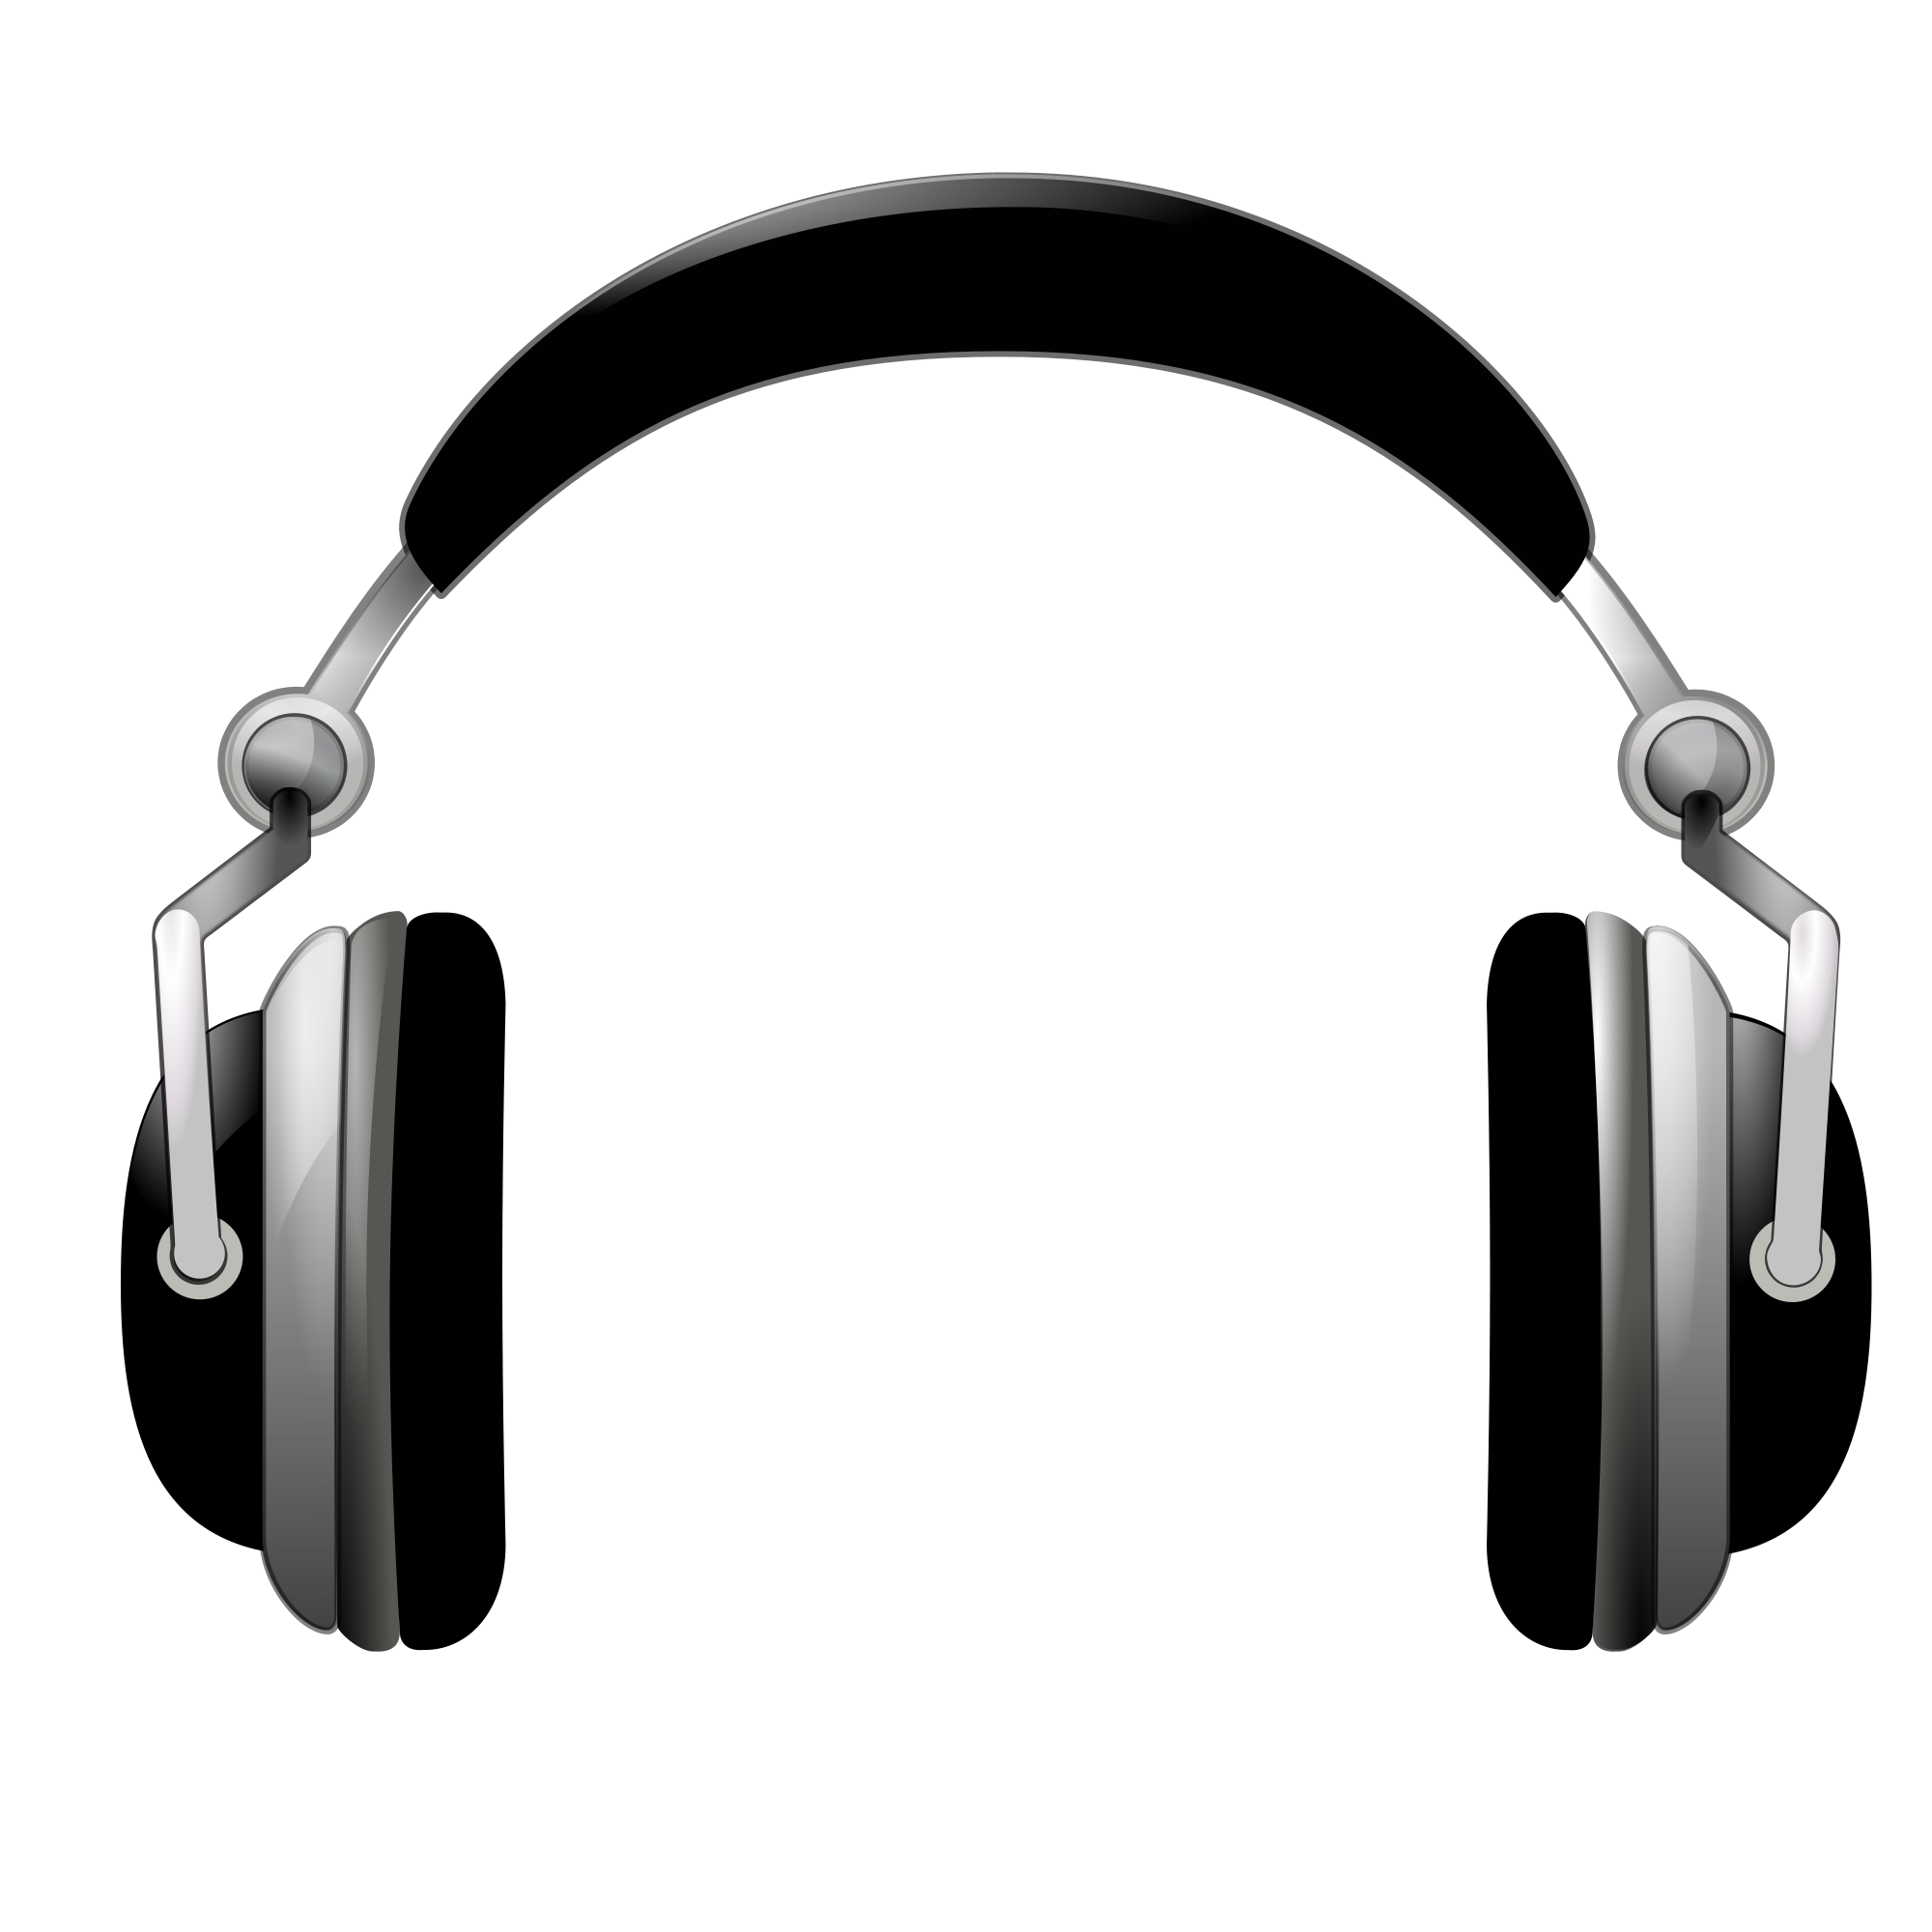 Earbuds clipart fancy. Headphone cilpart design free